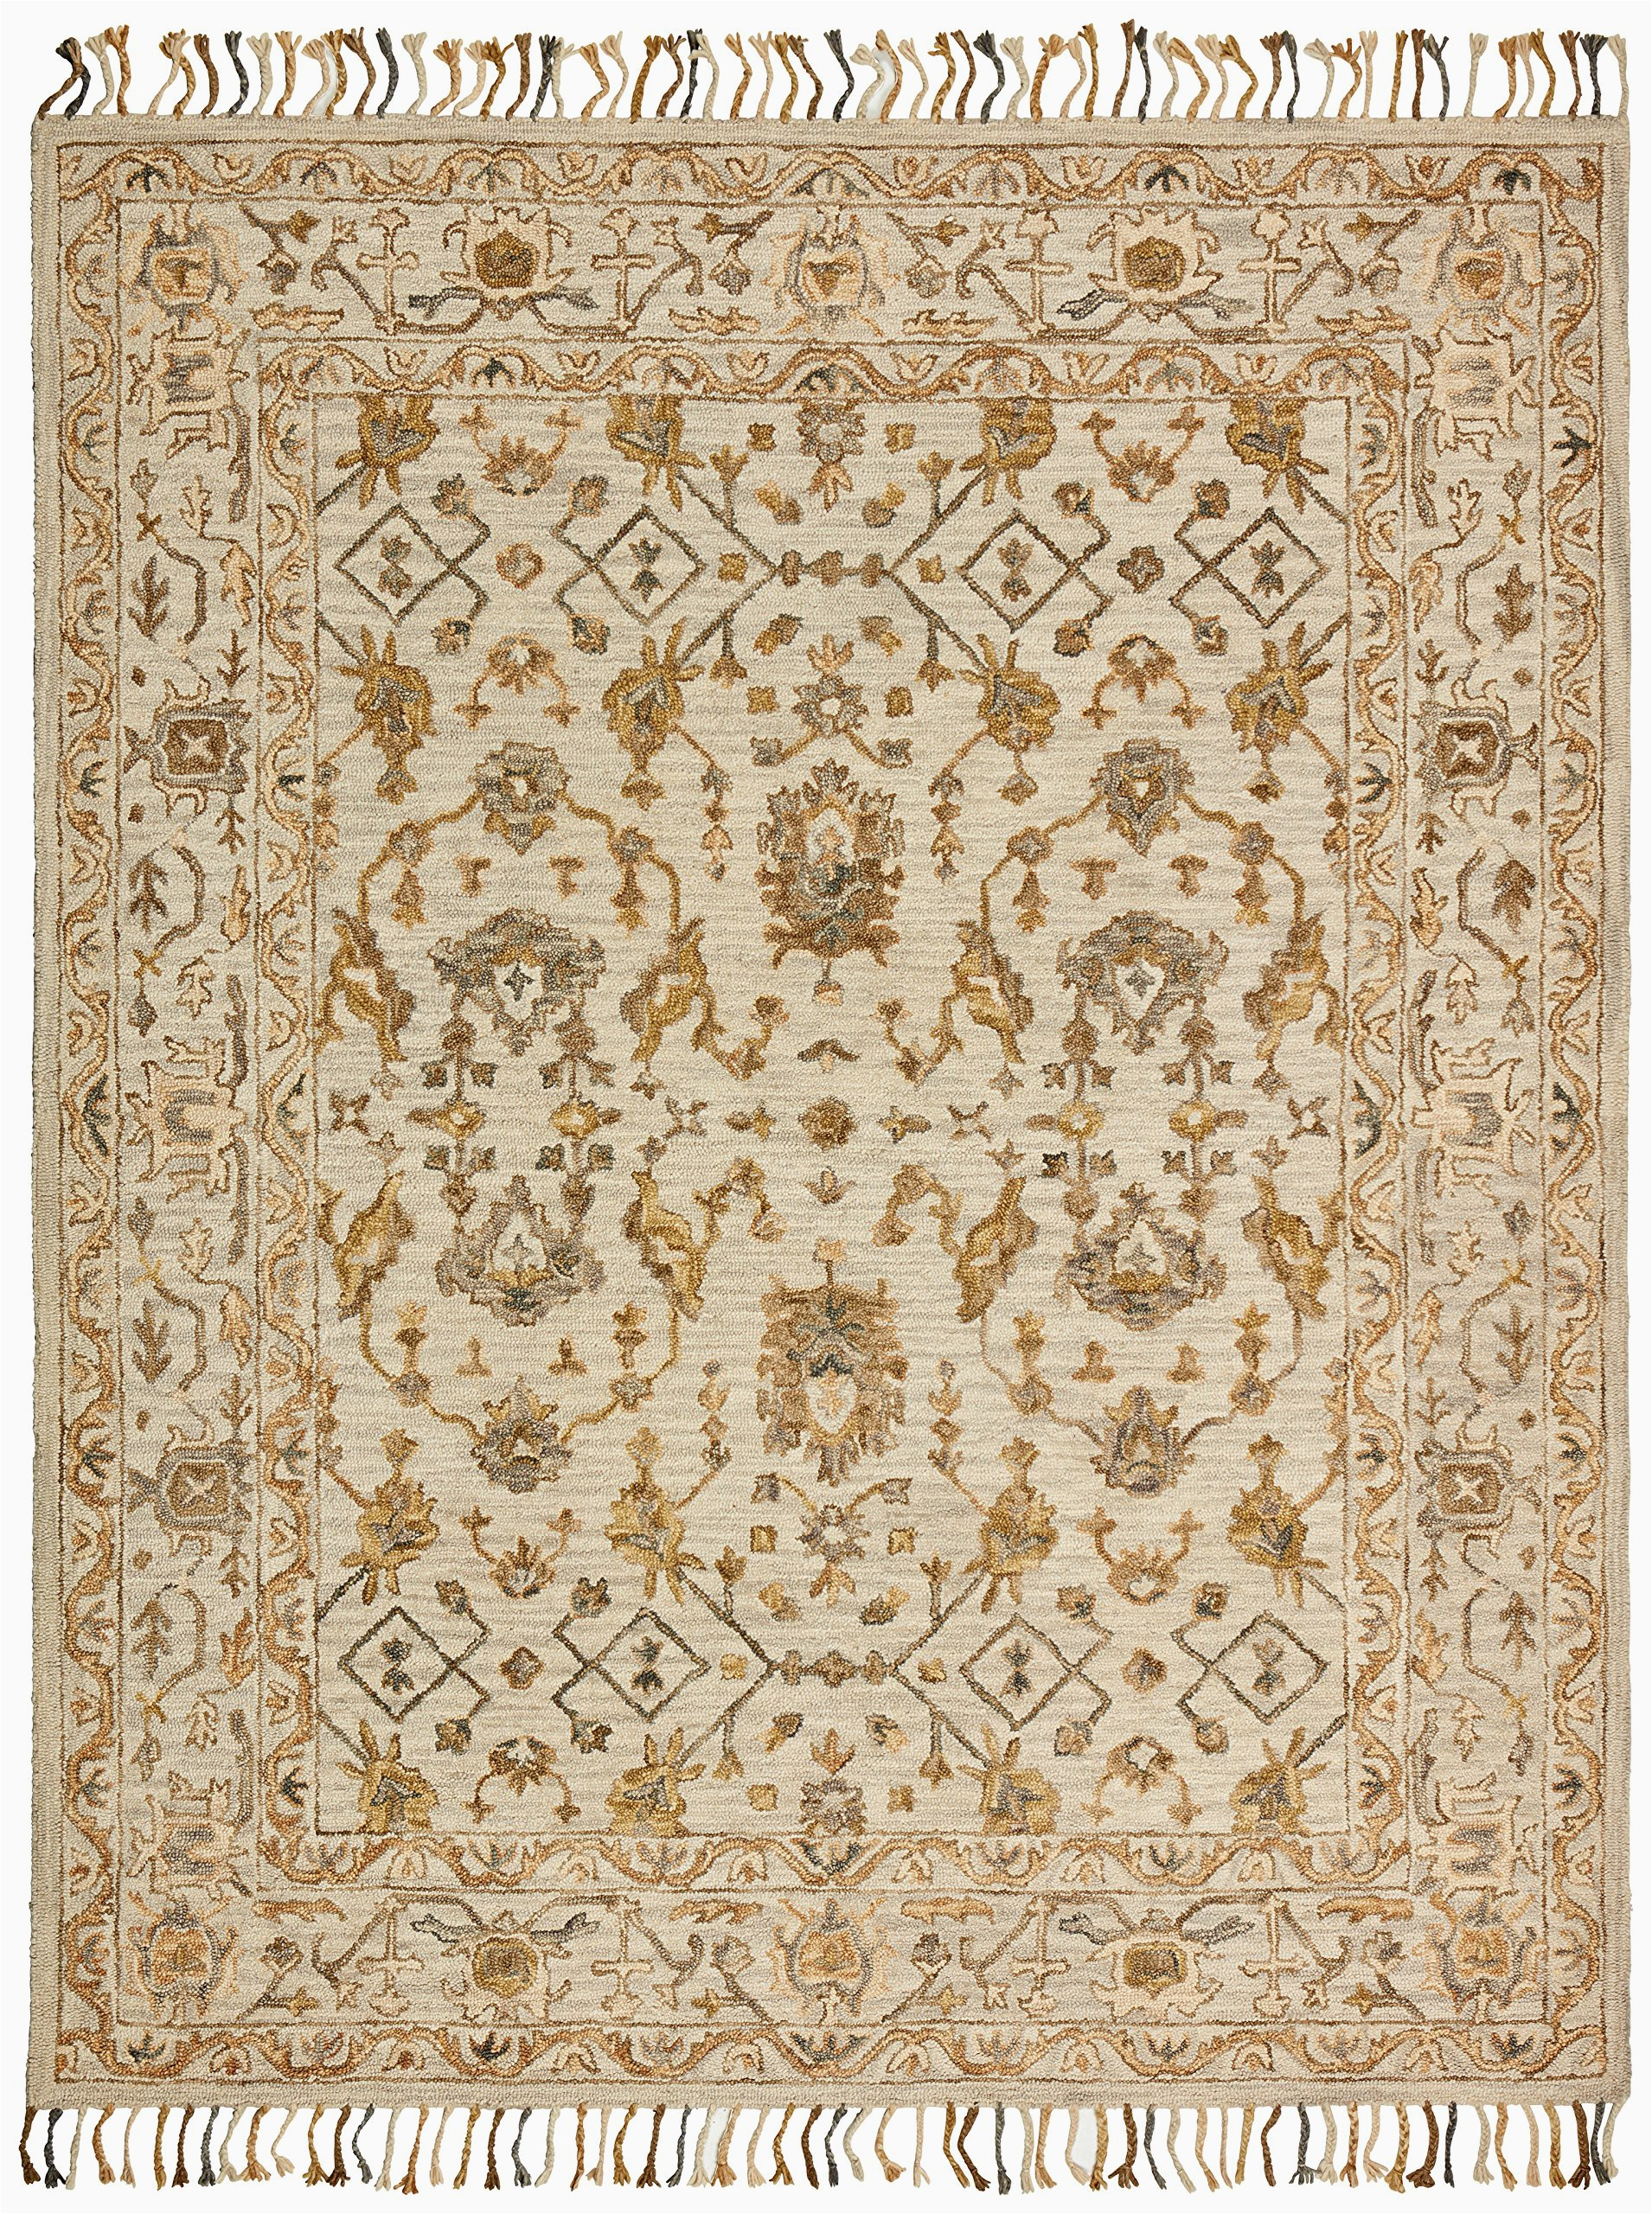 Amazon 5 by 8 area Rugs Amazon Brand – Stone & Beam Lottie Traditional Wool area Rug 5 X 8 Foot Beige